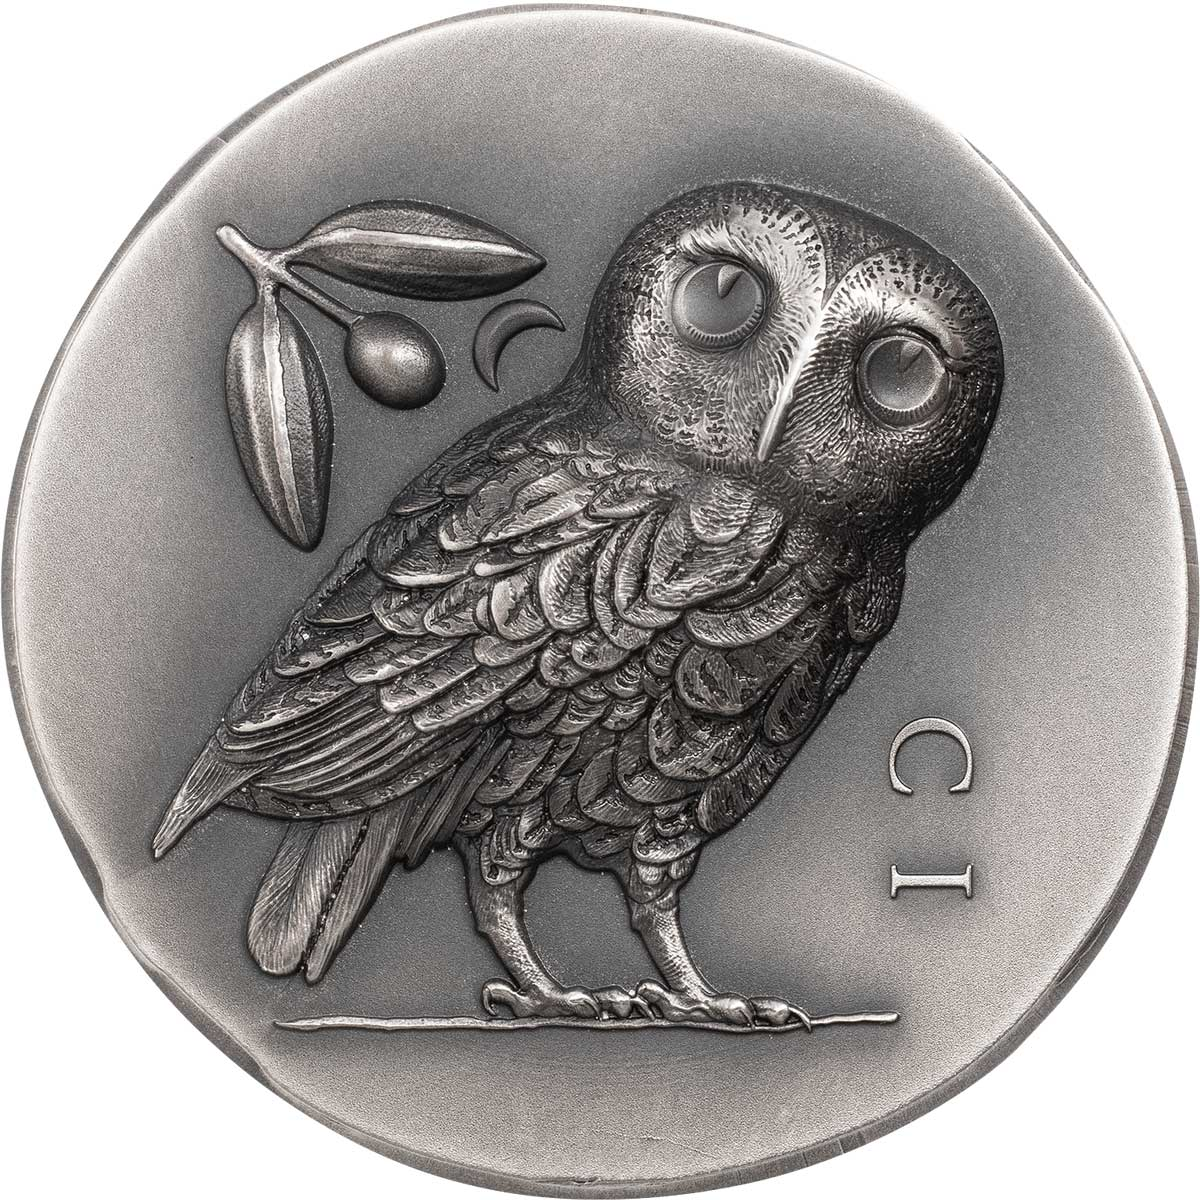 ATHENA'S OWL 2021 Cook Islands 1oz ultra high relief